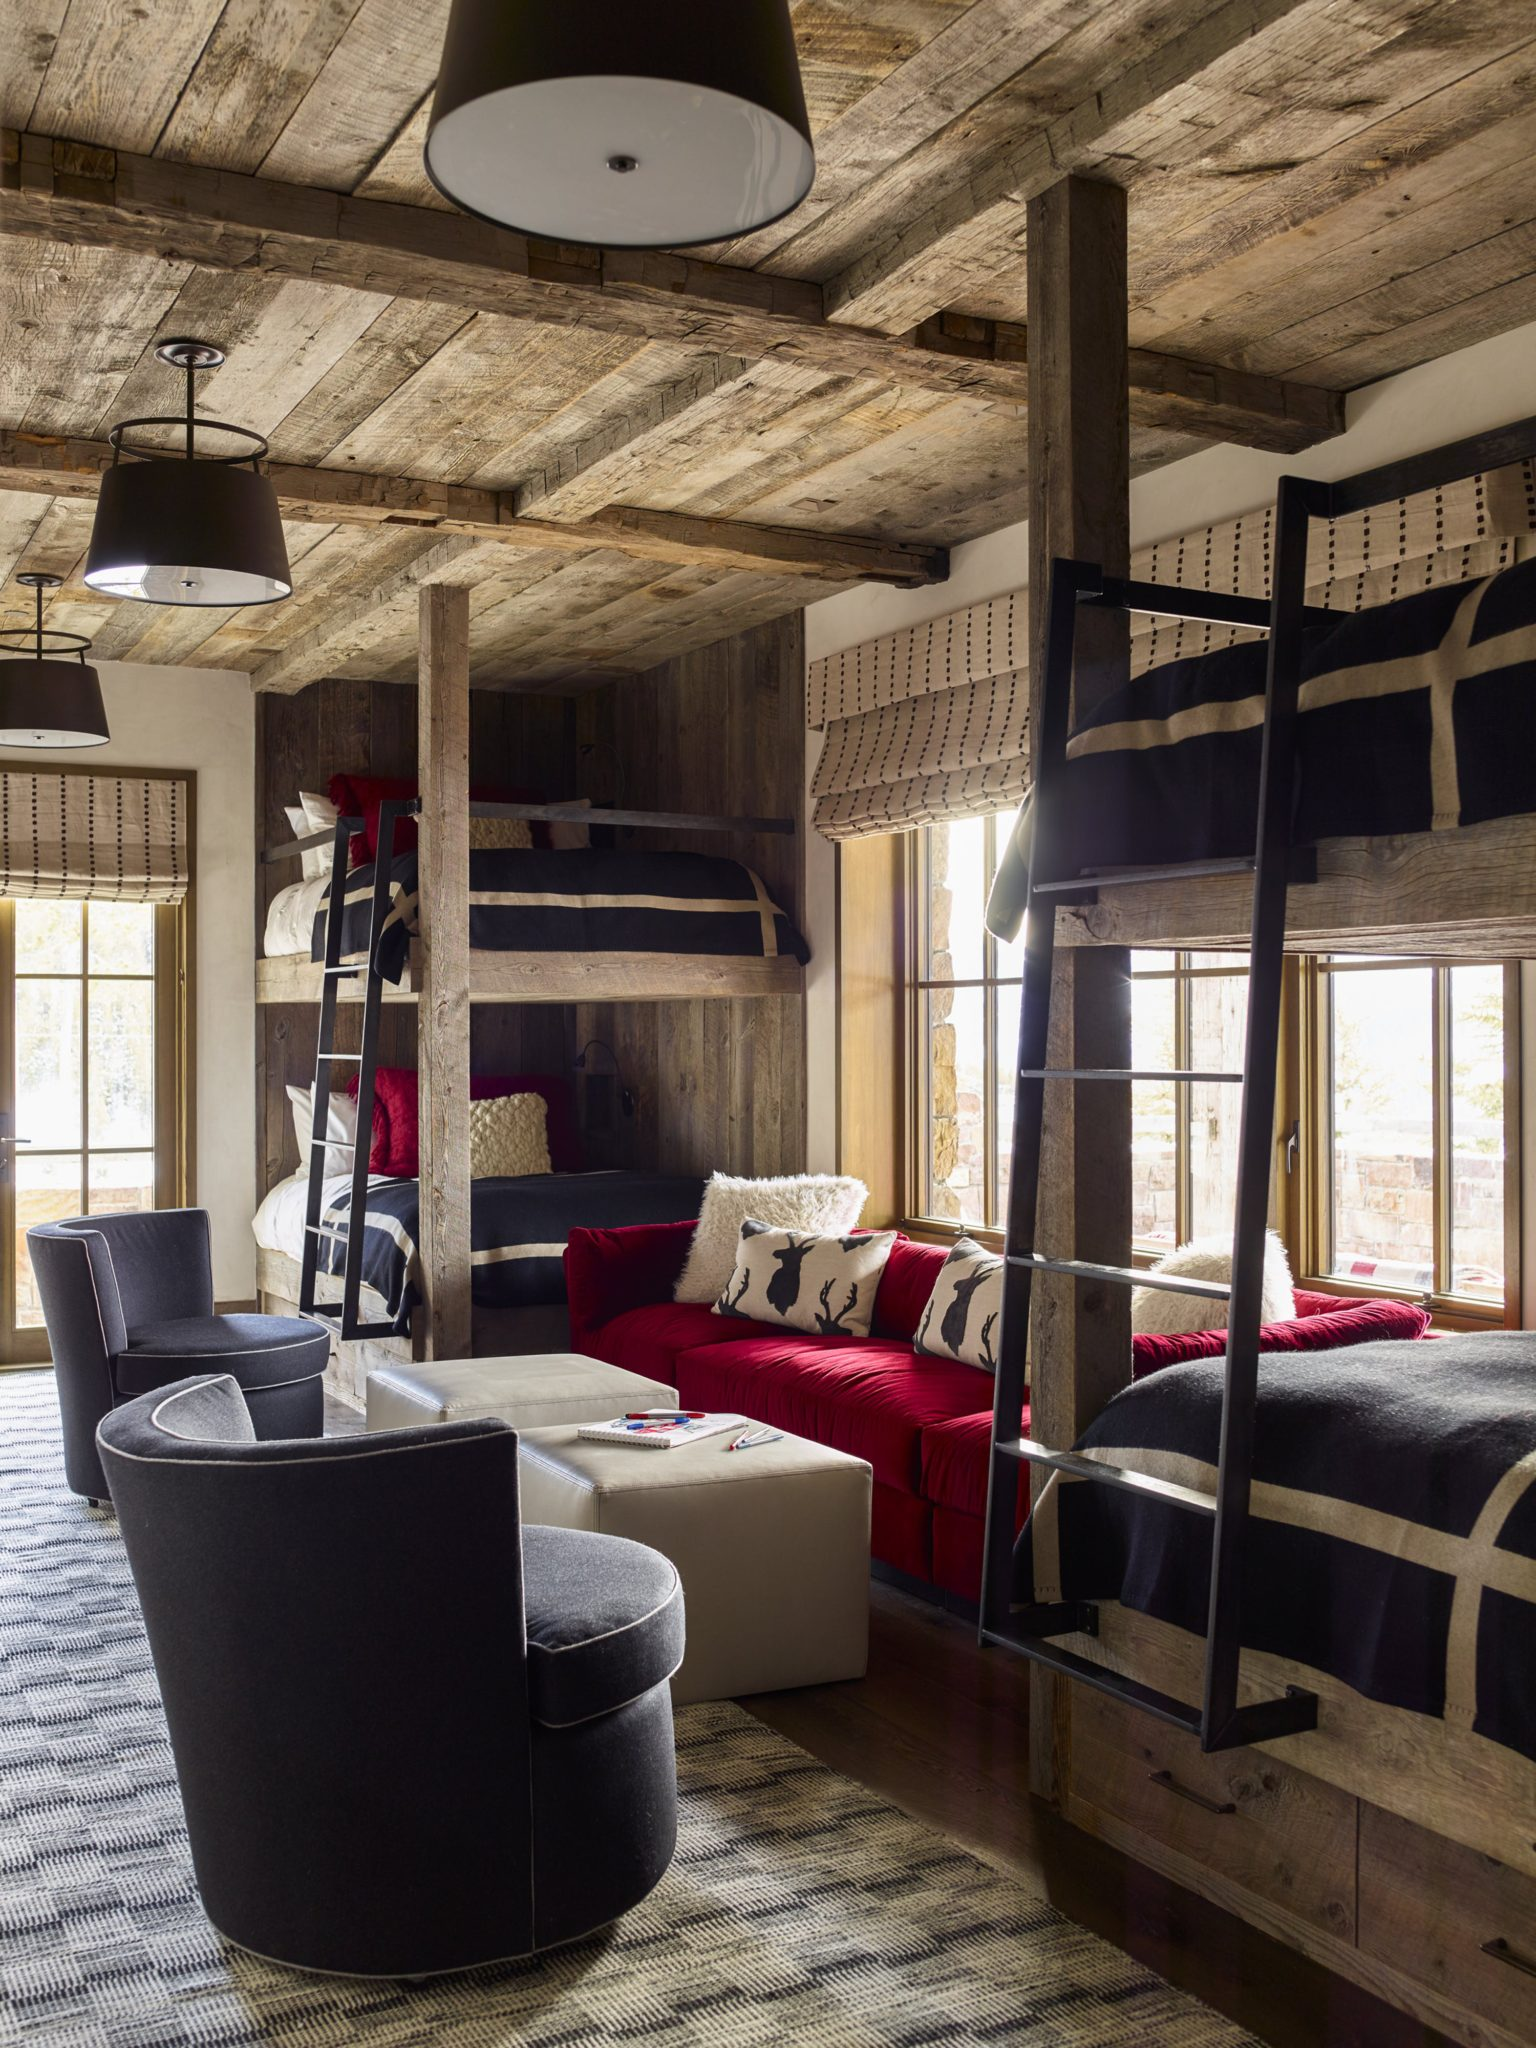 Ideal for children or teens, this rustic bunk room is full of plush seating — like the Harvey Probber-inspired sofa covered in Dedar mohair, vintage swivel chairs upholstered in Casamance wool, and custom ottomans covered in Kravet leather. The bunk beds were made custom by Shintaffer and the pendants are from The Urban Electric Co.